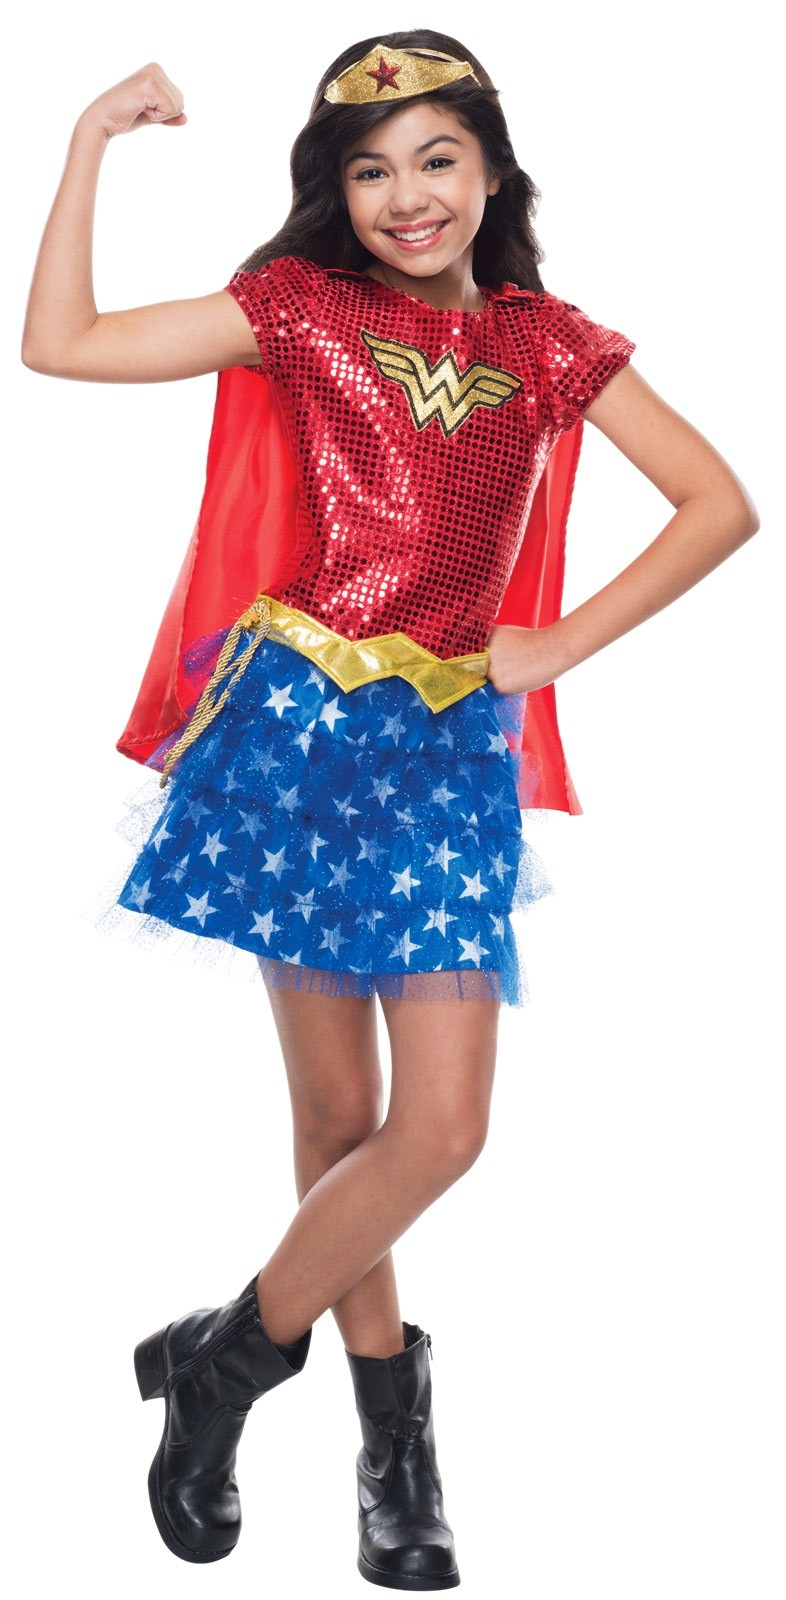 Wonder Woman Costume Ideas and Tips. Until Gal Gadot embodied Diana, princess of the Amazons from the island Themyscira, in 's feature film, Lynda Carter personified Wonder Woman.